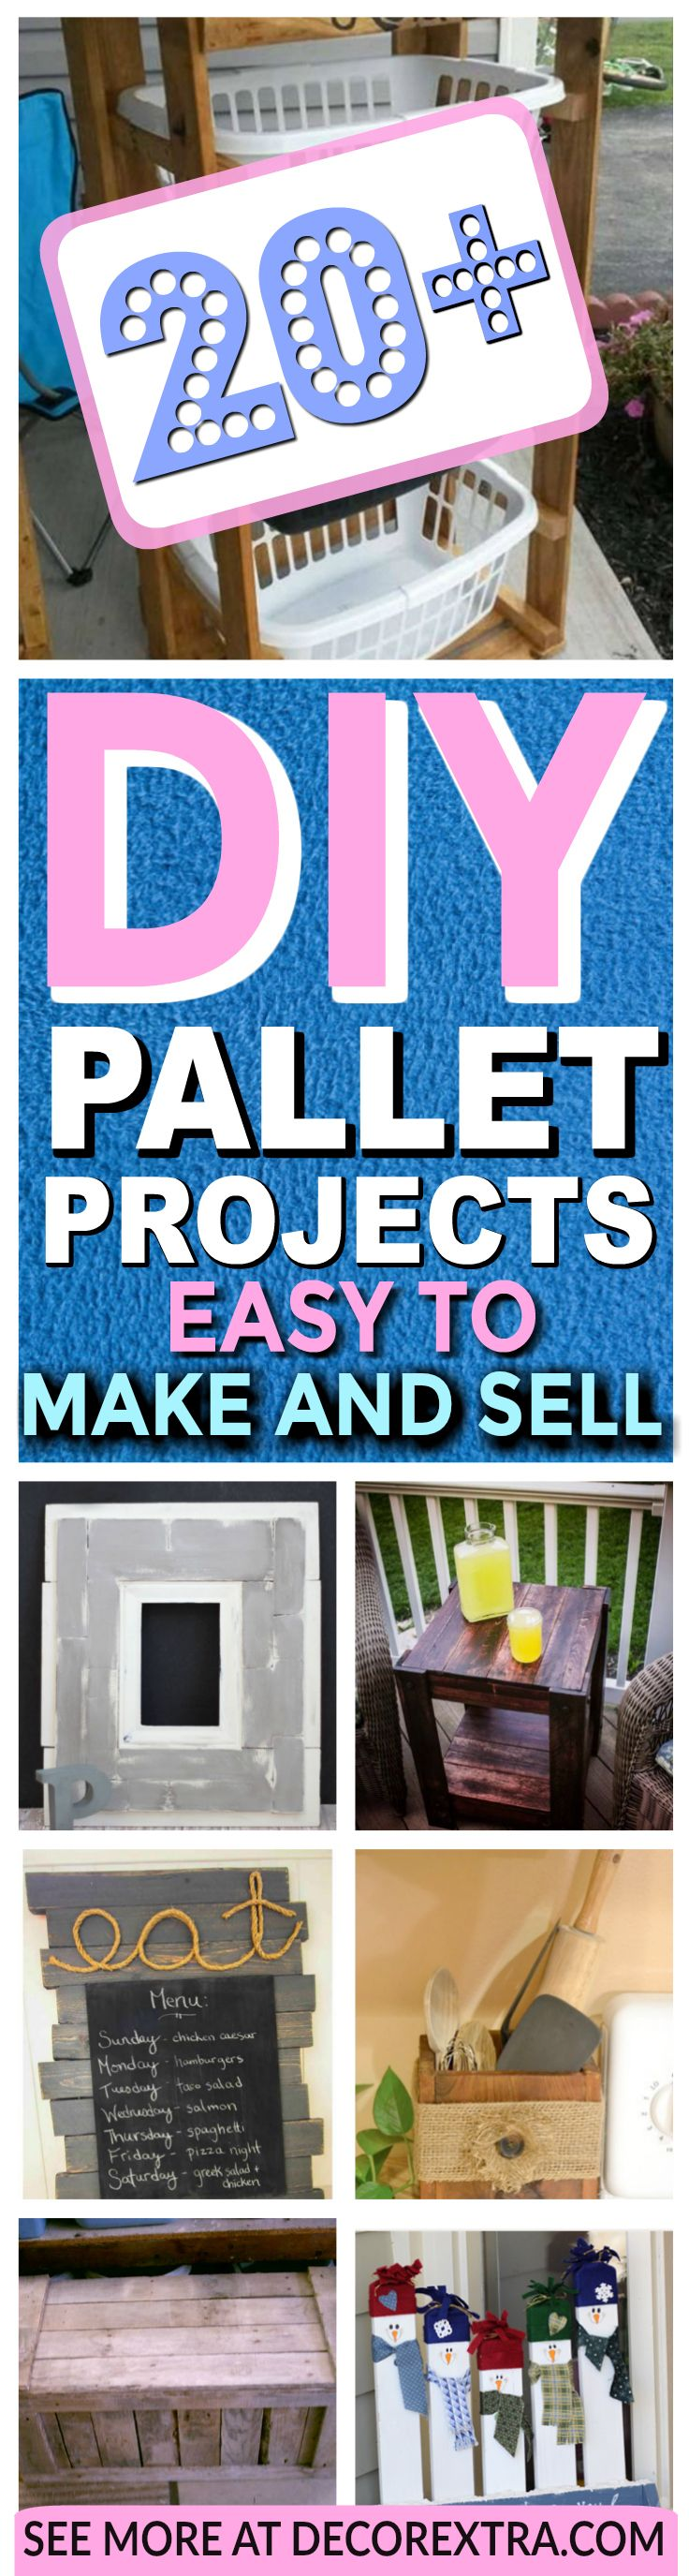 Easy Pallet Projects And Crafts To Make Sell Cool Tables Cheap DIY Ideas Craft You Can On Etsy Wooden Made